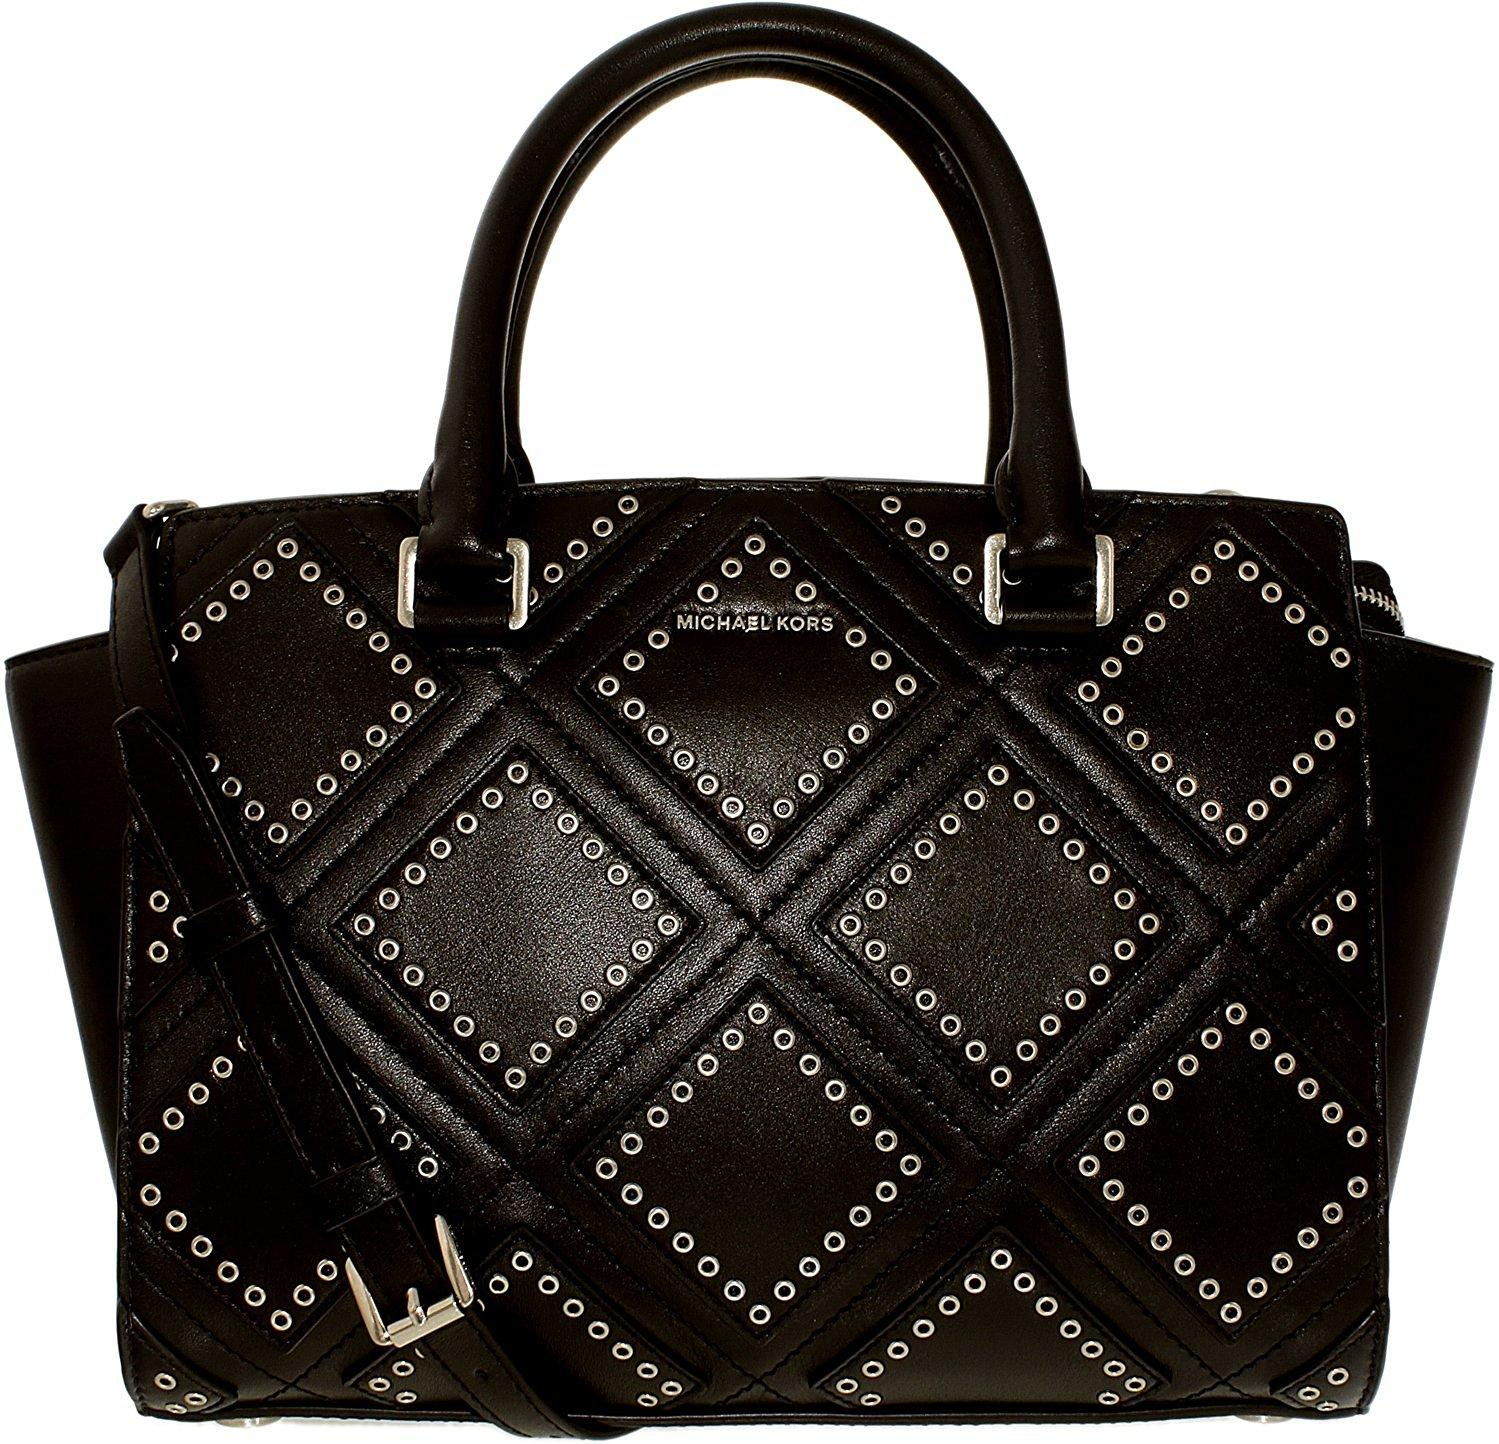 9e1cd4cc1bc1 Michael Kors Selma Medium Diamond Grommet Leather Satchel - Black -  30F6ADXS2L-001